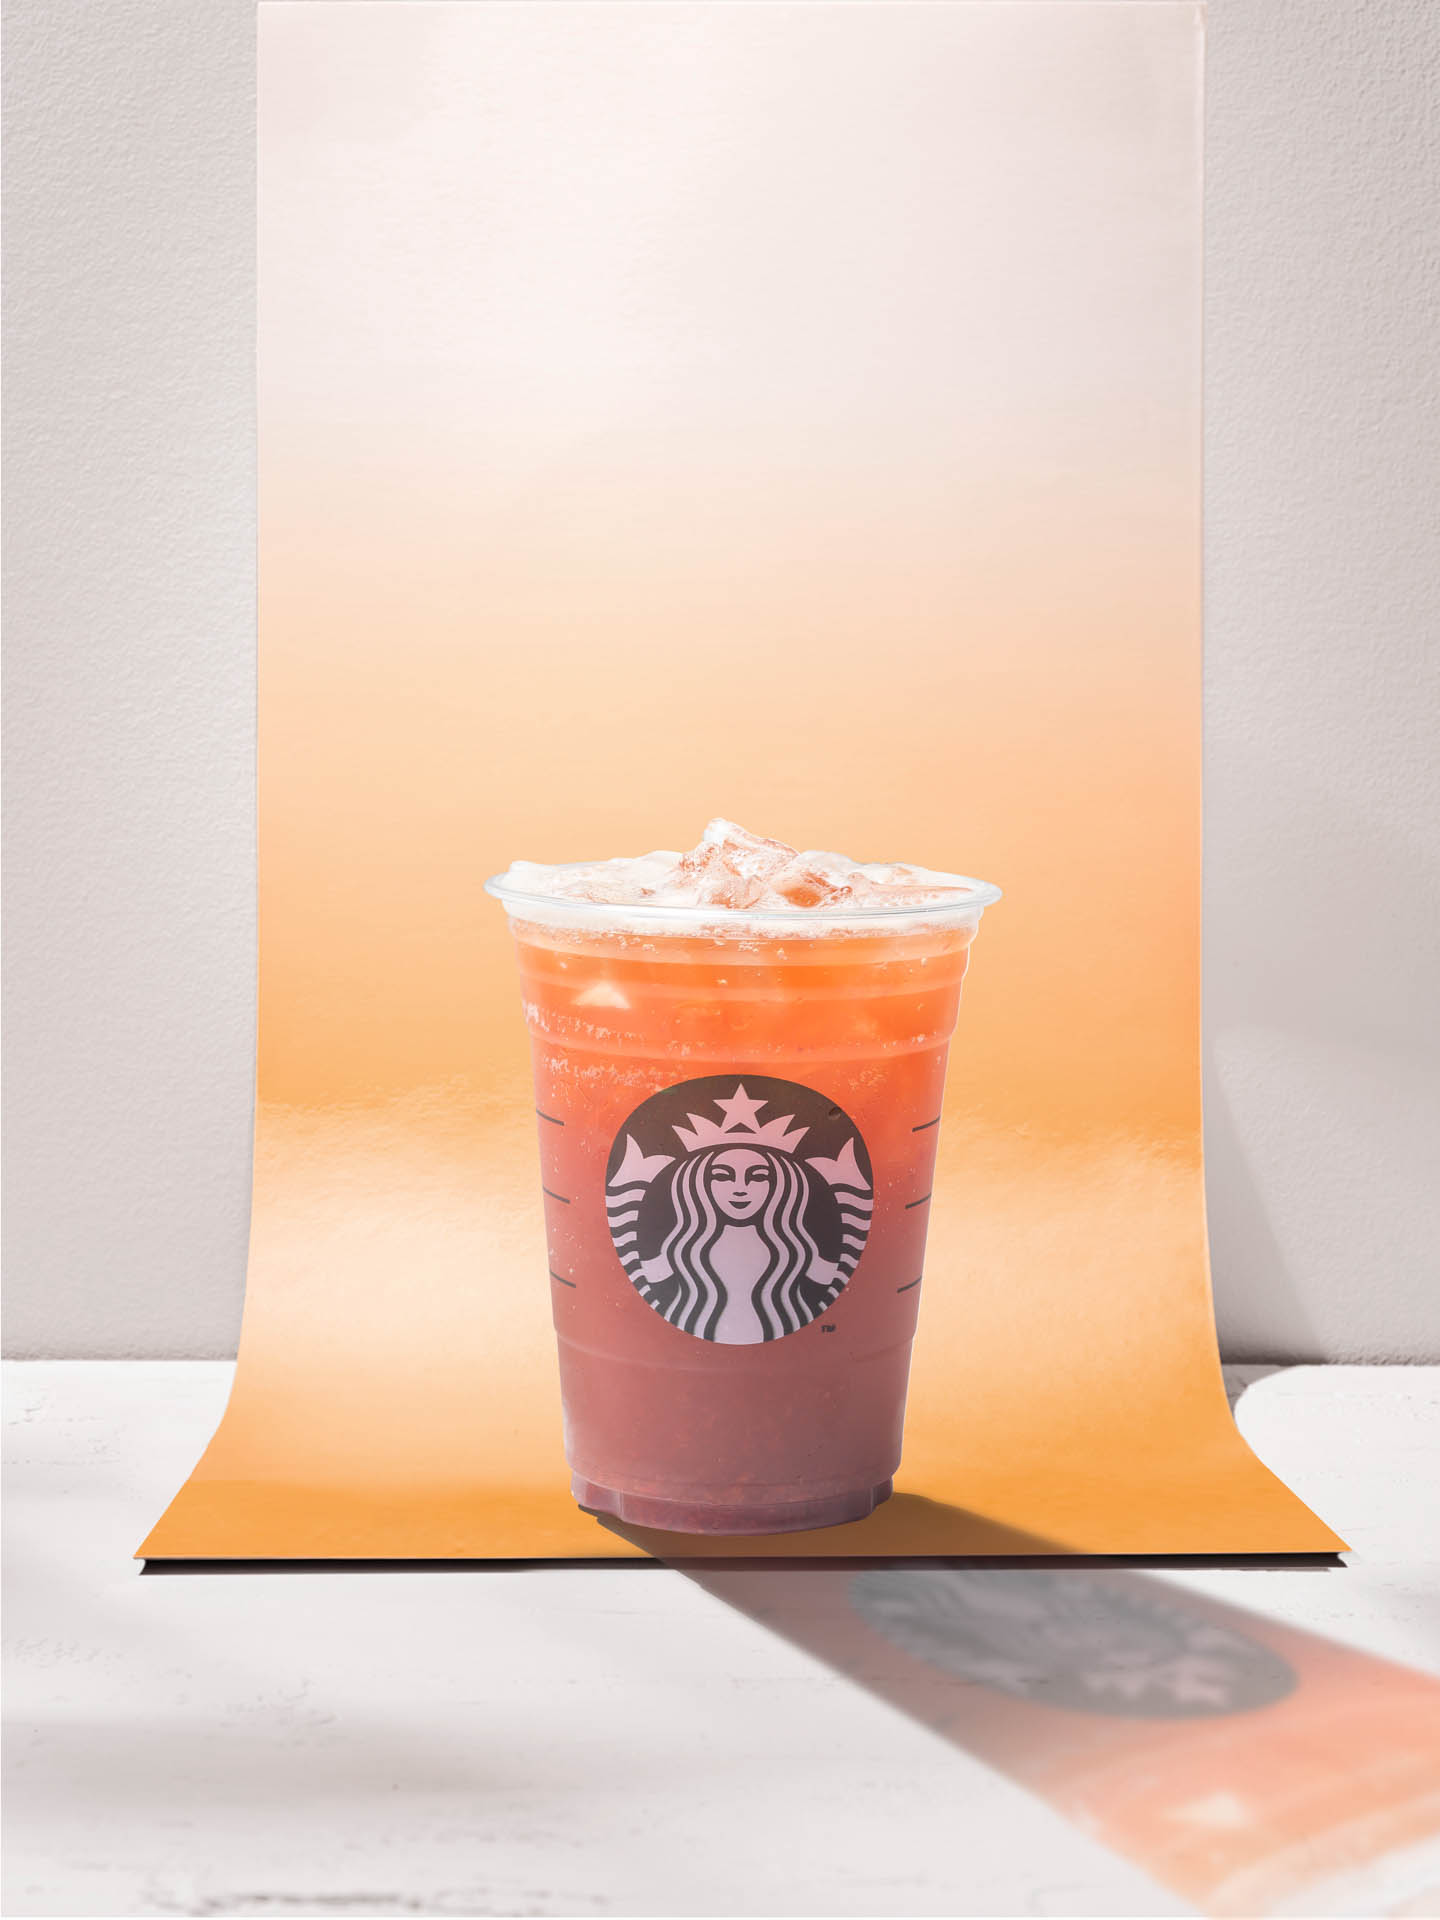 Starbucks launches a new line of Teavana drinks and moonlit collectables with a 15% discount - Alvinology